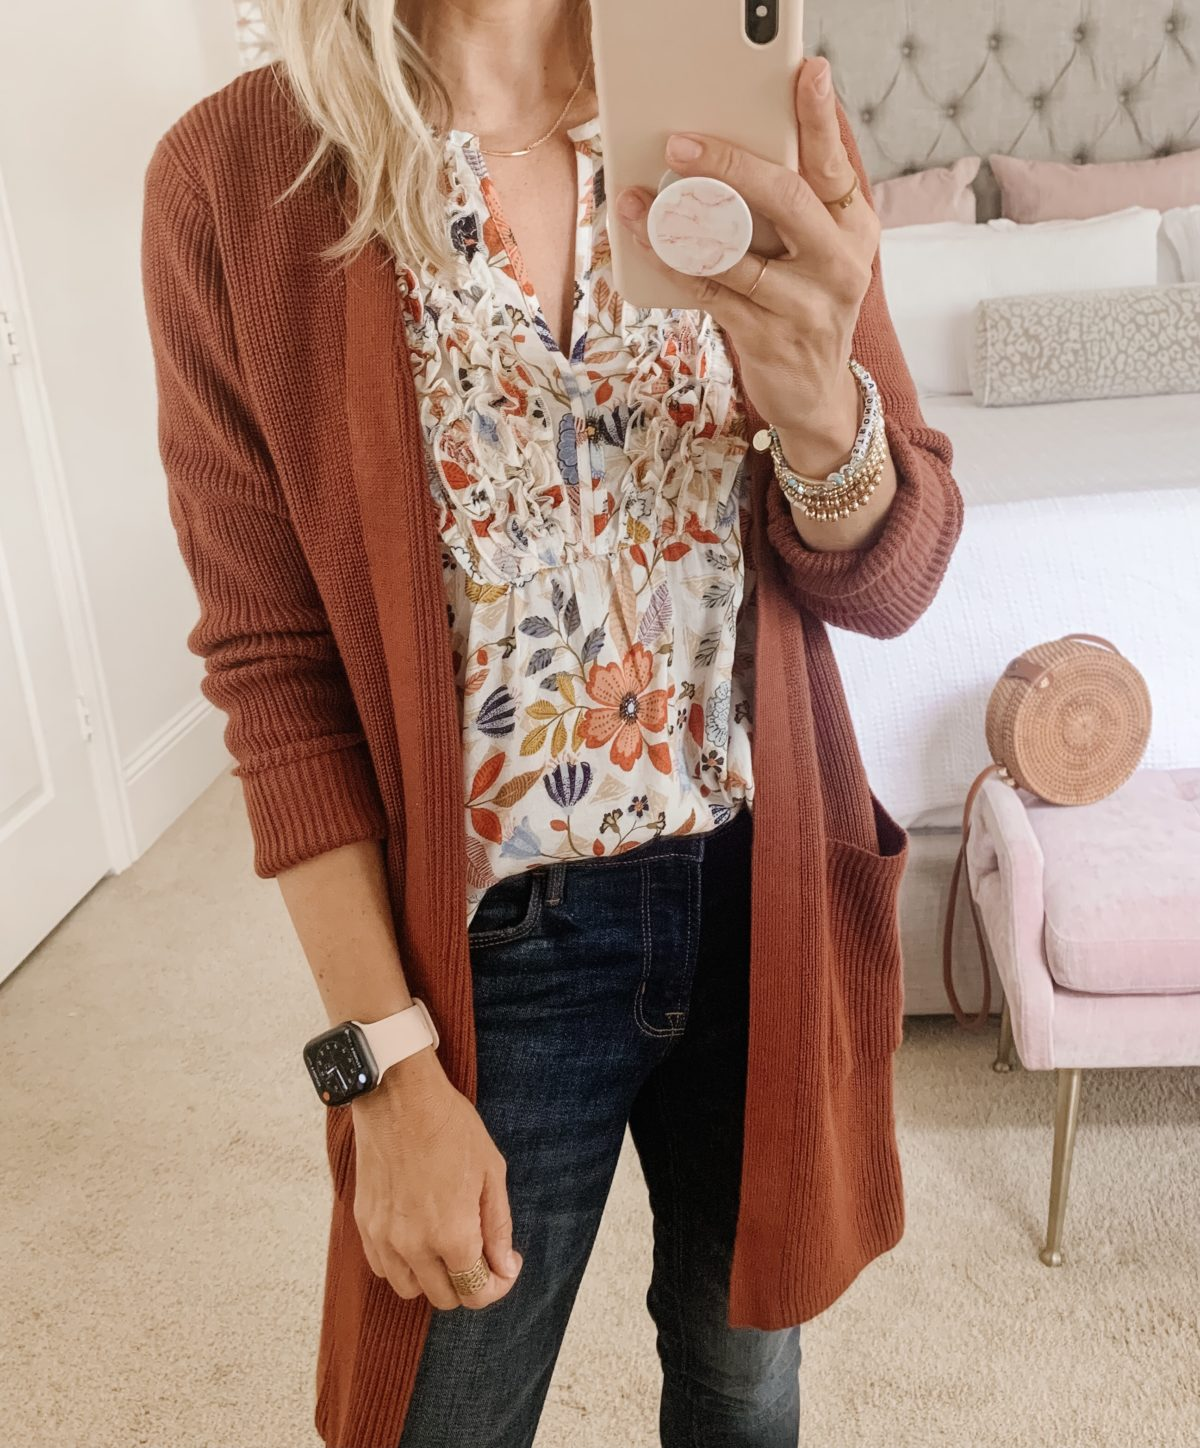 Old Navy fashion, Floral top, Cardigan, and Jeans with Sandals and Crossbody